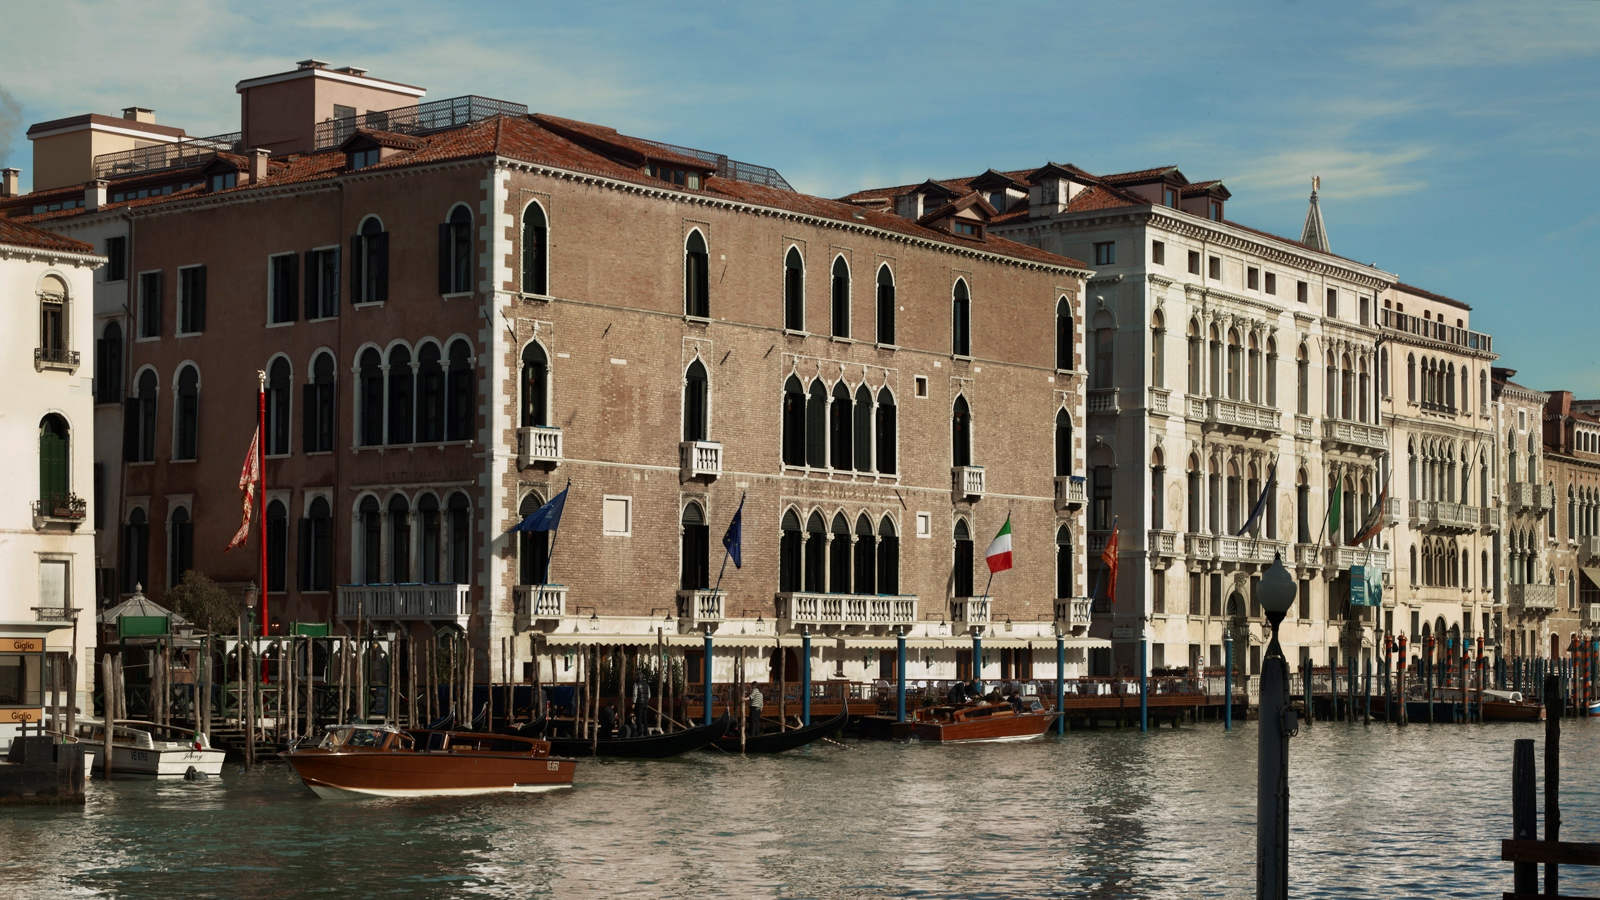 The exterior of the revamped Gritti Palace.